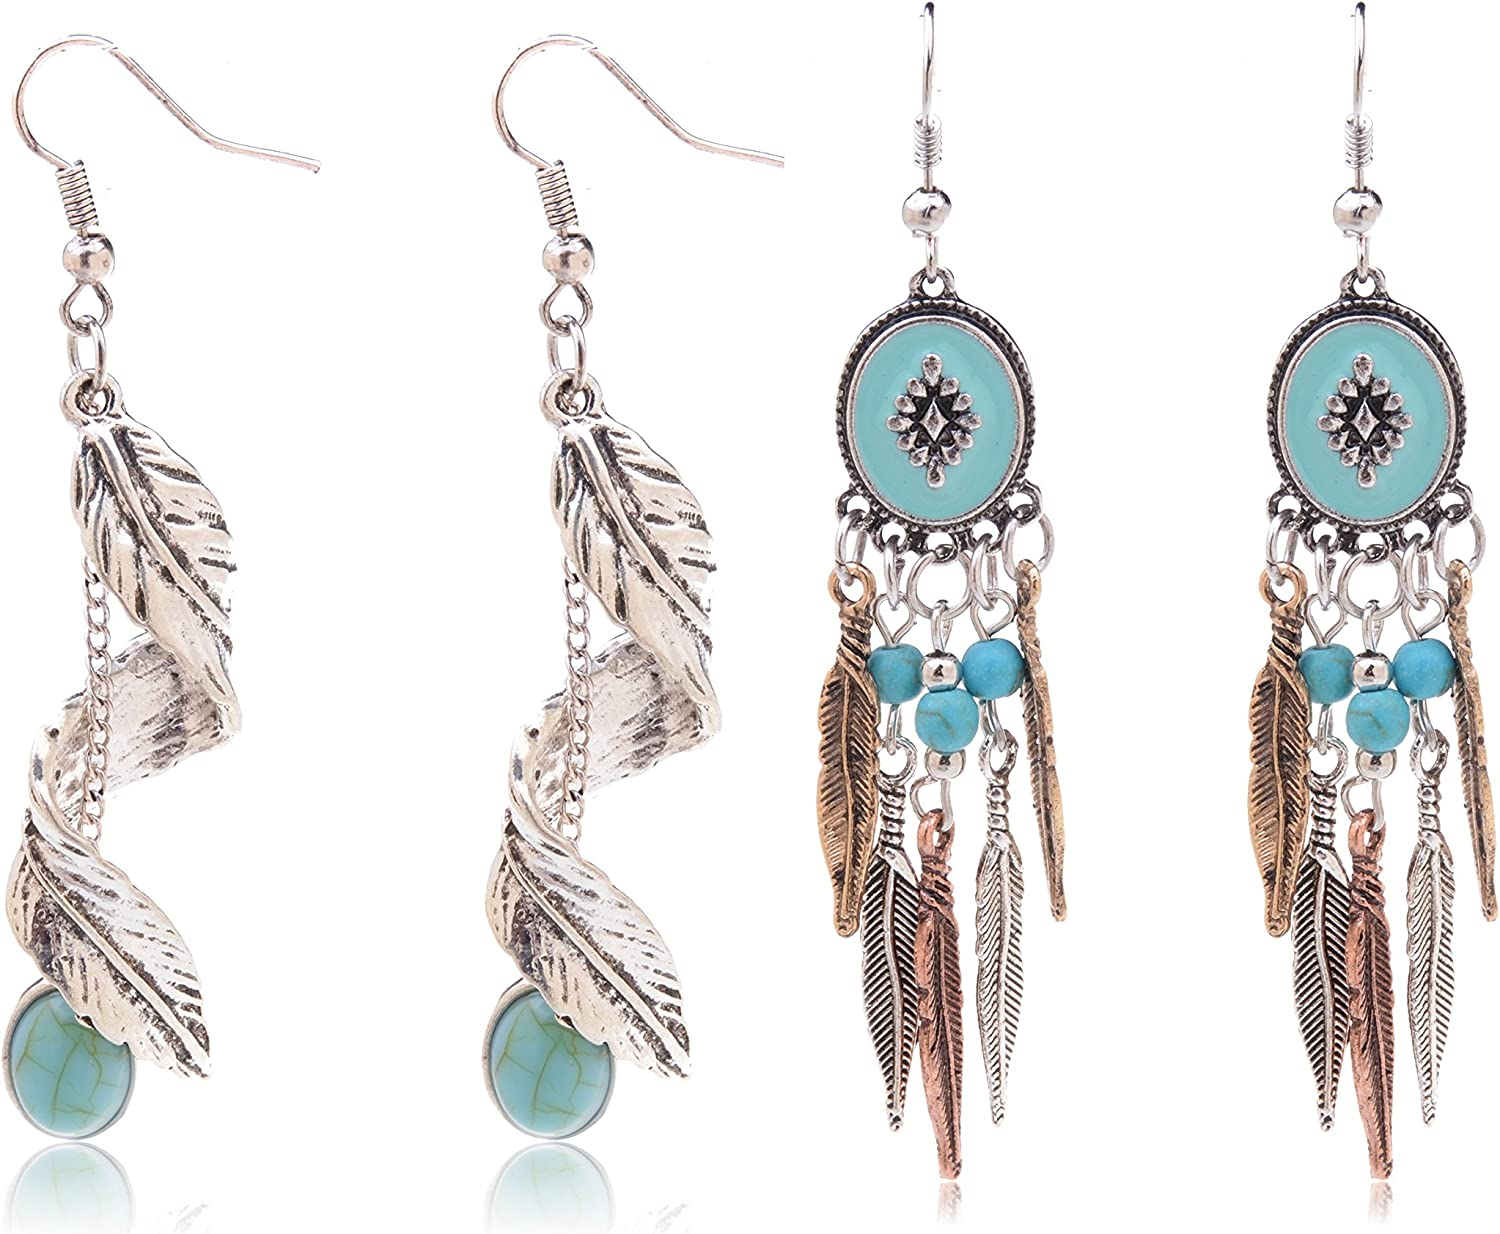 Ginasy Bohemia Spiral Drop Earrings Teardrop Simulated Turquoise Dangle Earrings Fashion Jewelry for Women Girls Valentines Day Gifts